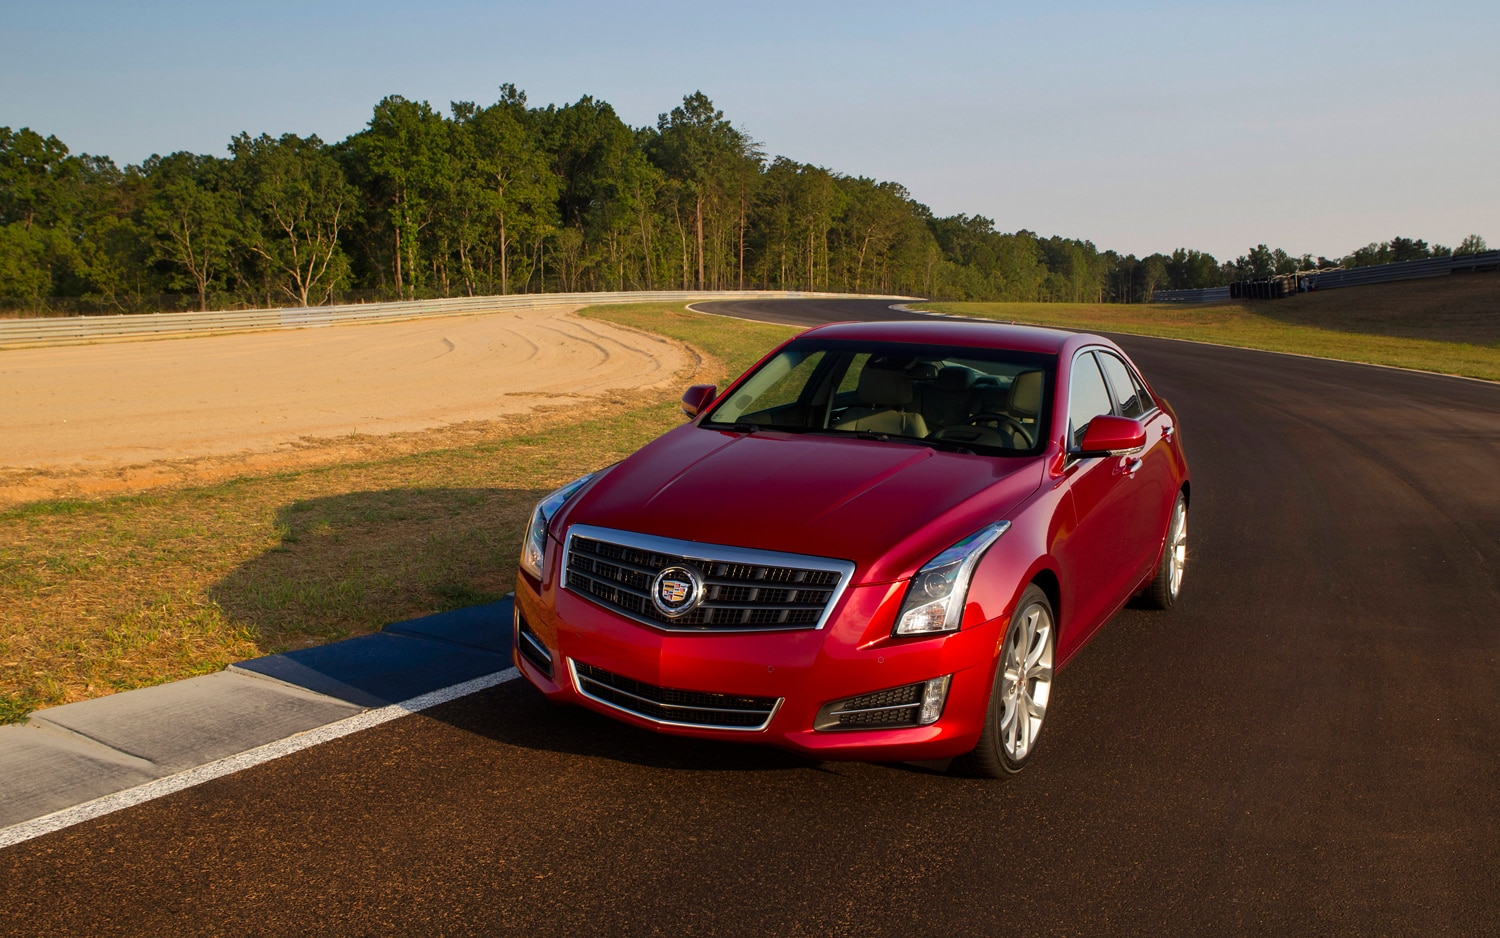 2013 Cadillac ATS Red Front Left View 21